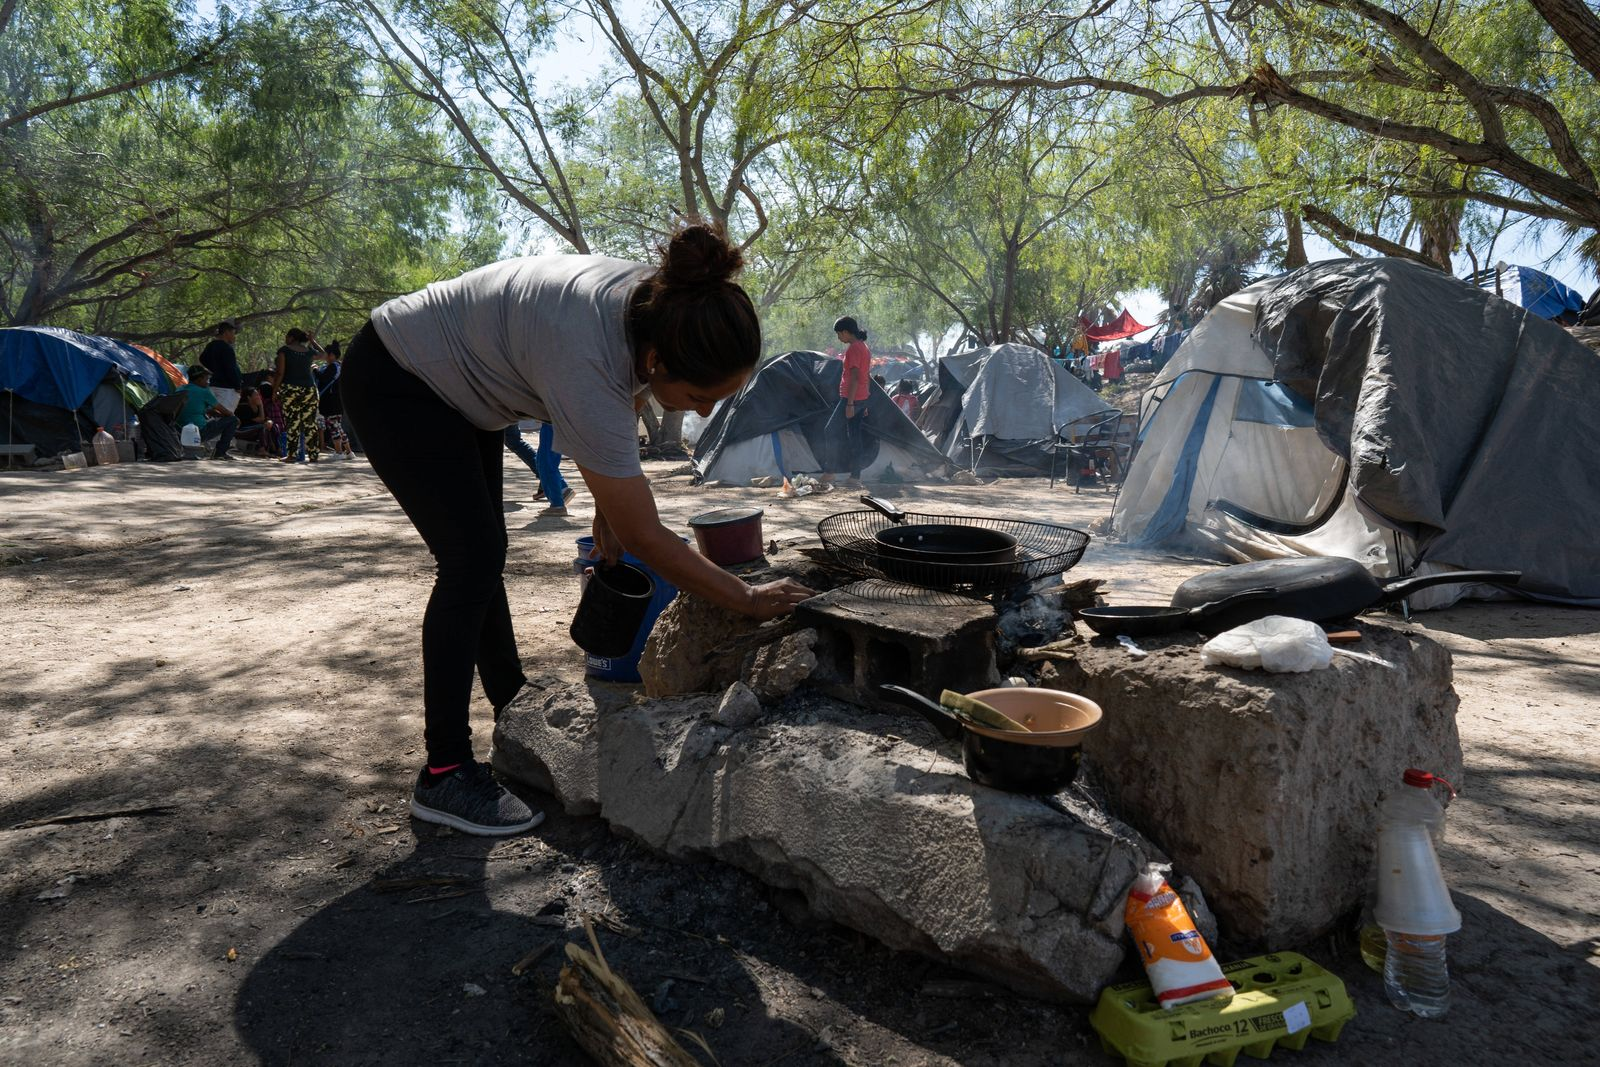 Mexico Refugees Matamoros, Mexico, 01 November 2019, a woman is seen tending to a stove in the refugee camp site. Around